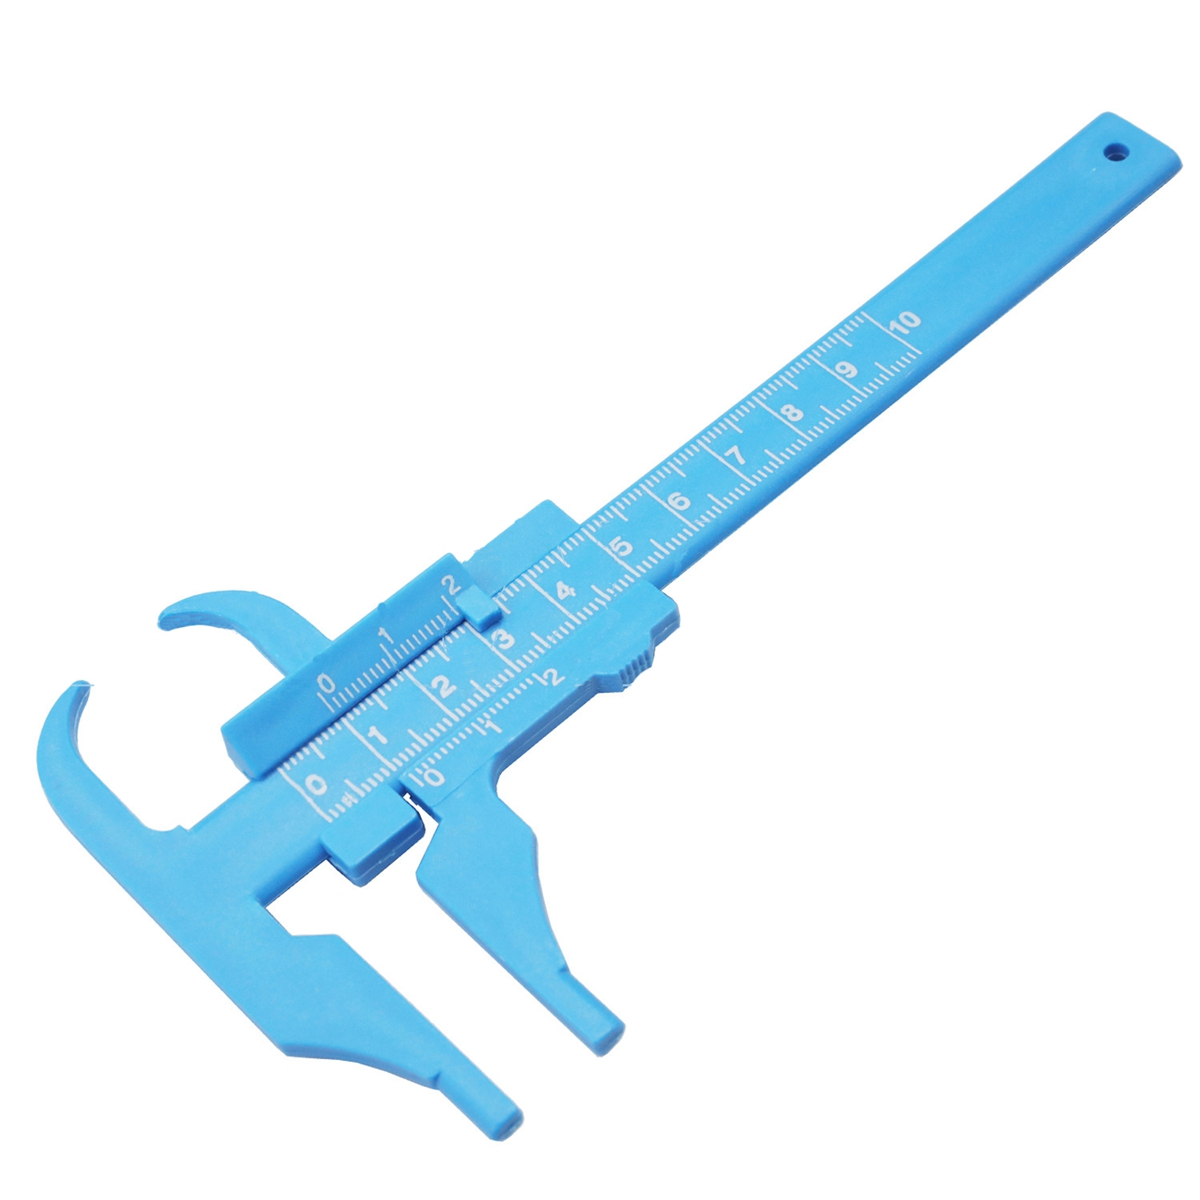 0-100MM 0.5MM Plastic Vernier Caliper Beauty Caliper Sliding Gau